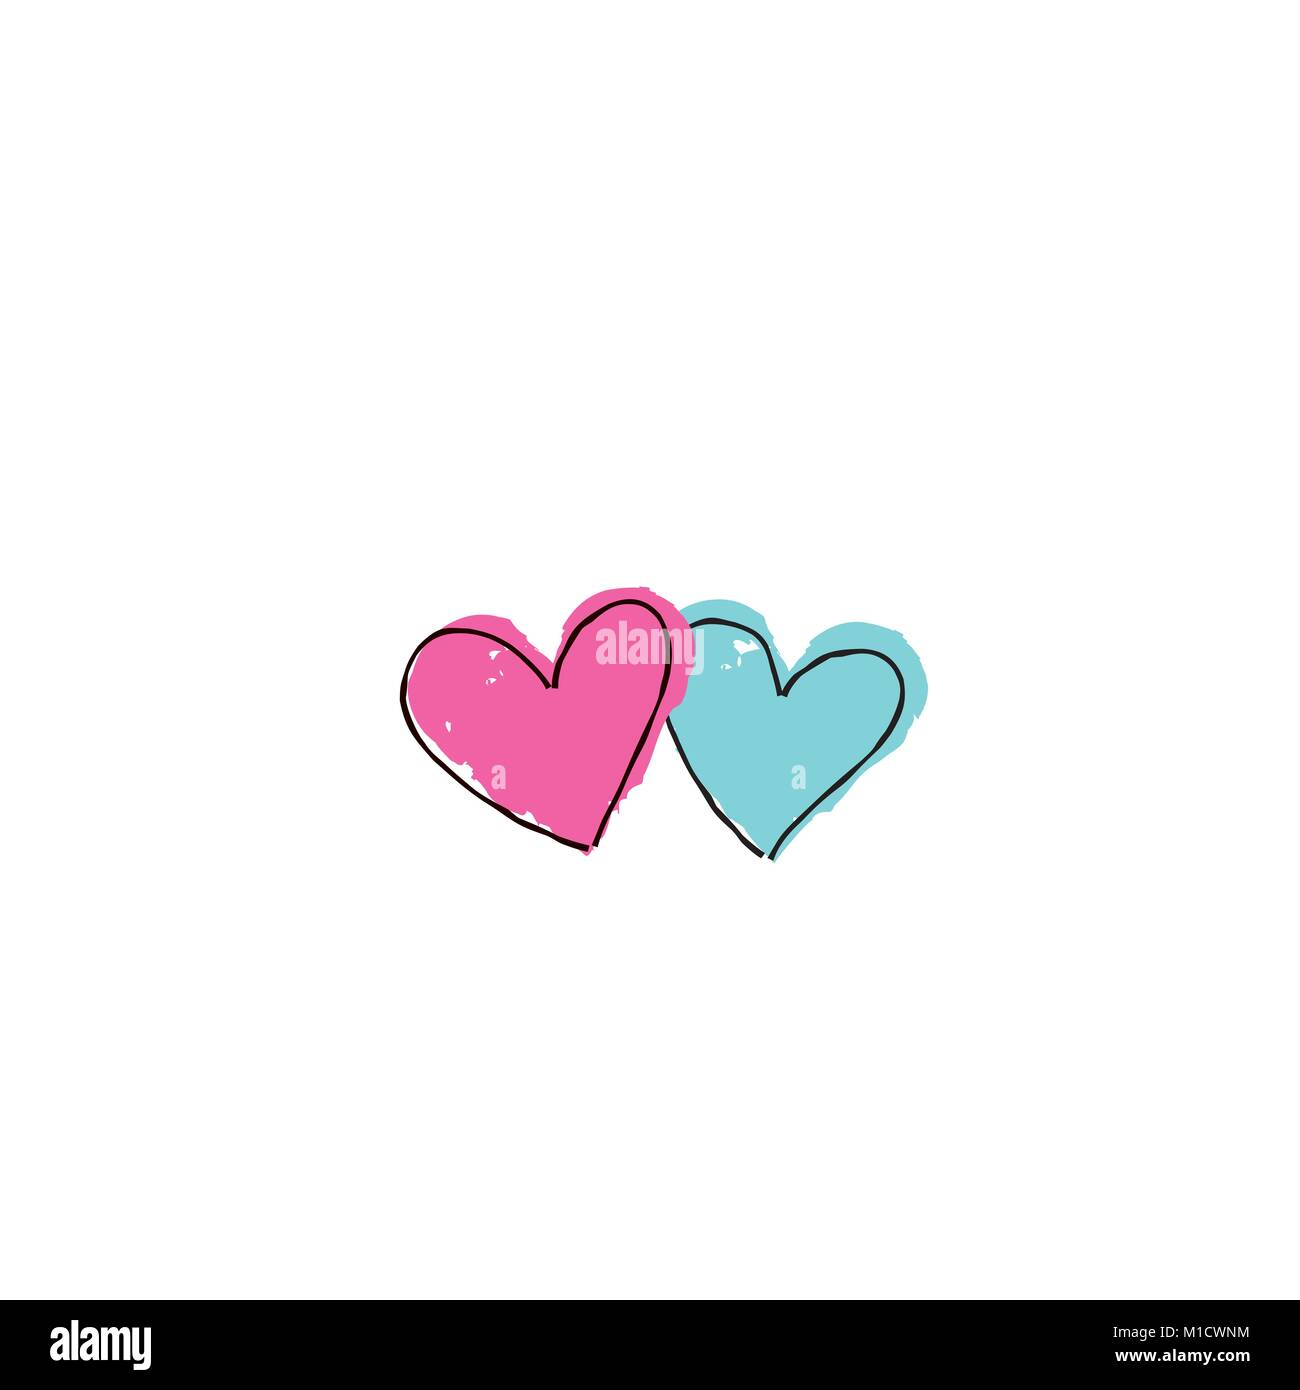 Two hearts in love. Love sign. Valentine's day greeting card in 1990s style with love hearts Stock Vector